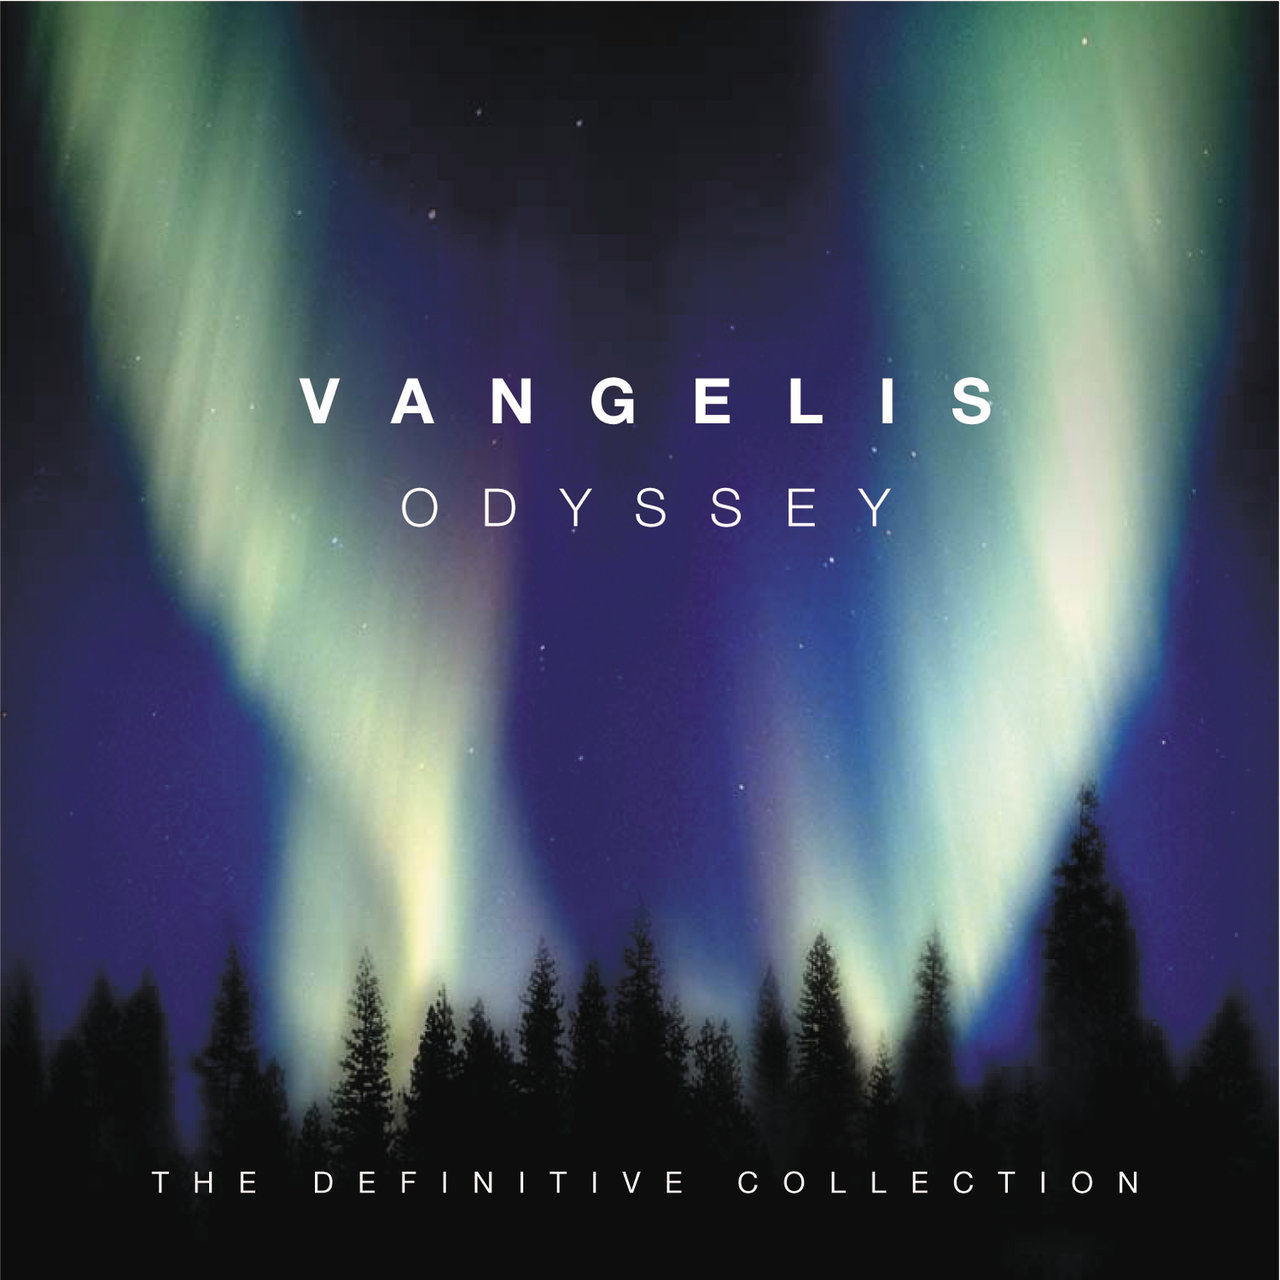 Vangelis / Odyssey - The Definitive Collection (Non EU Version)